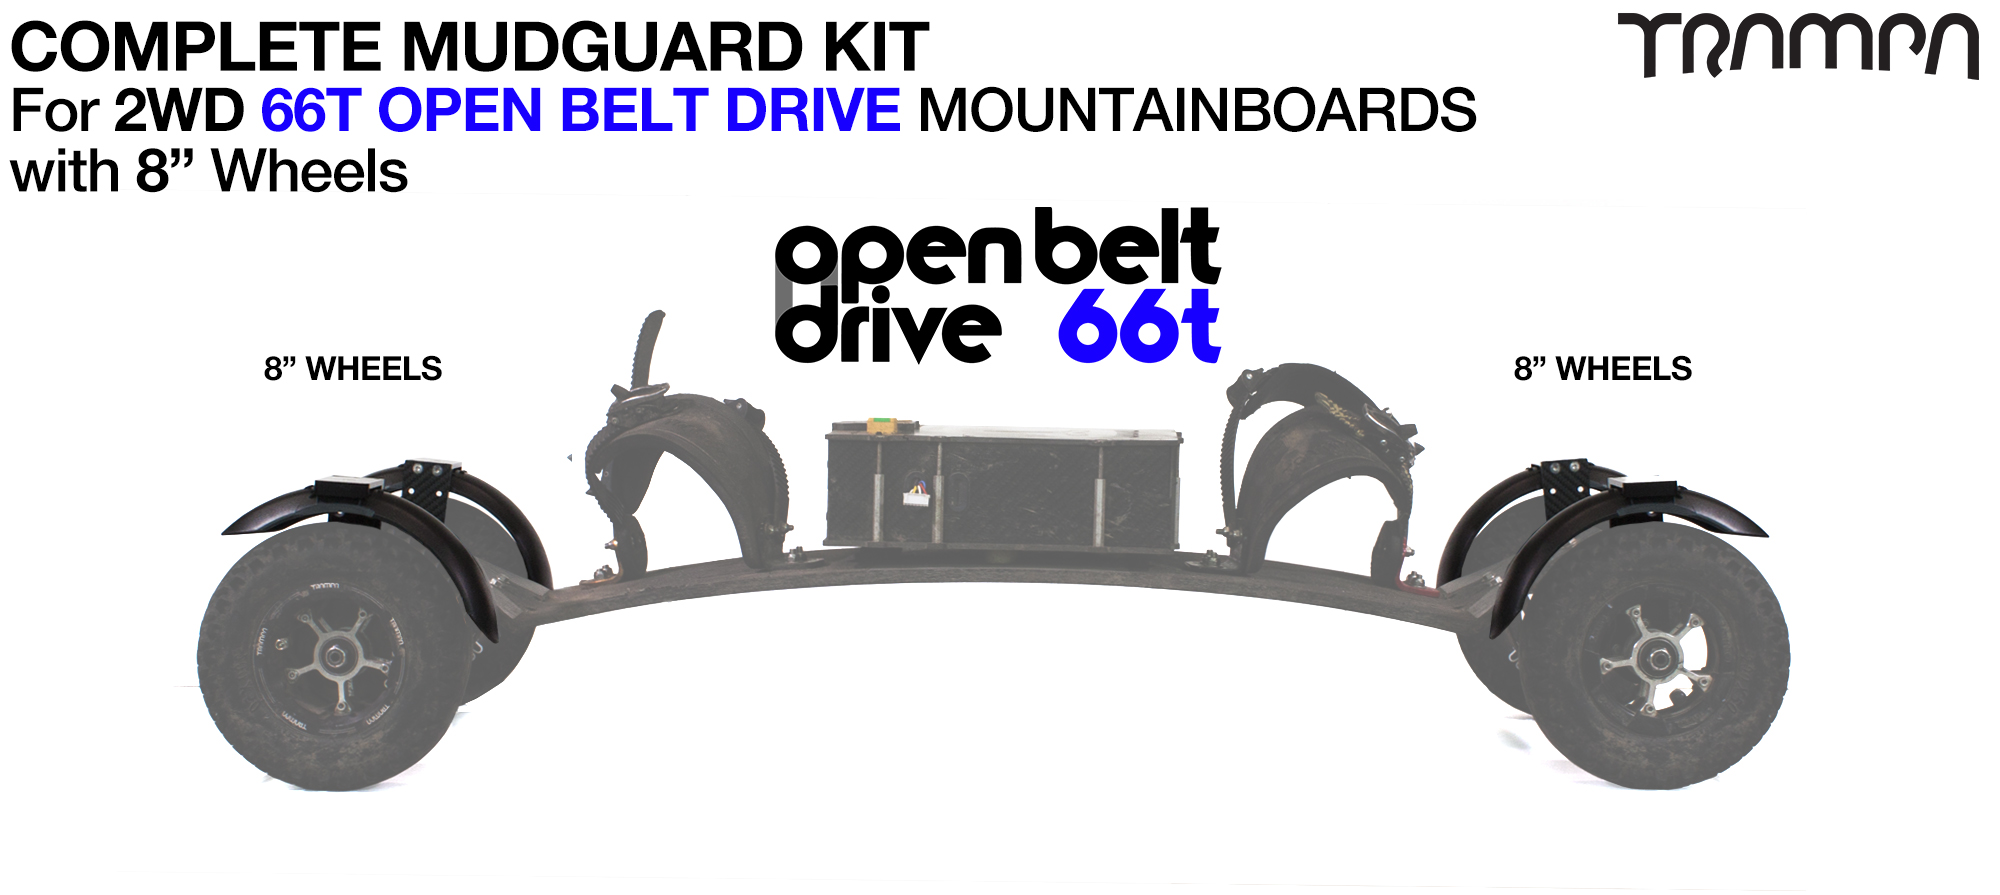 """Full Mudguard Kit for 2WD 66T OPEN BELT DRIVE Mountainboards - 8"""" Wheels All round"""